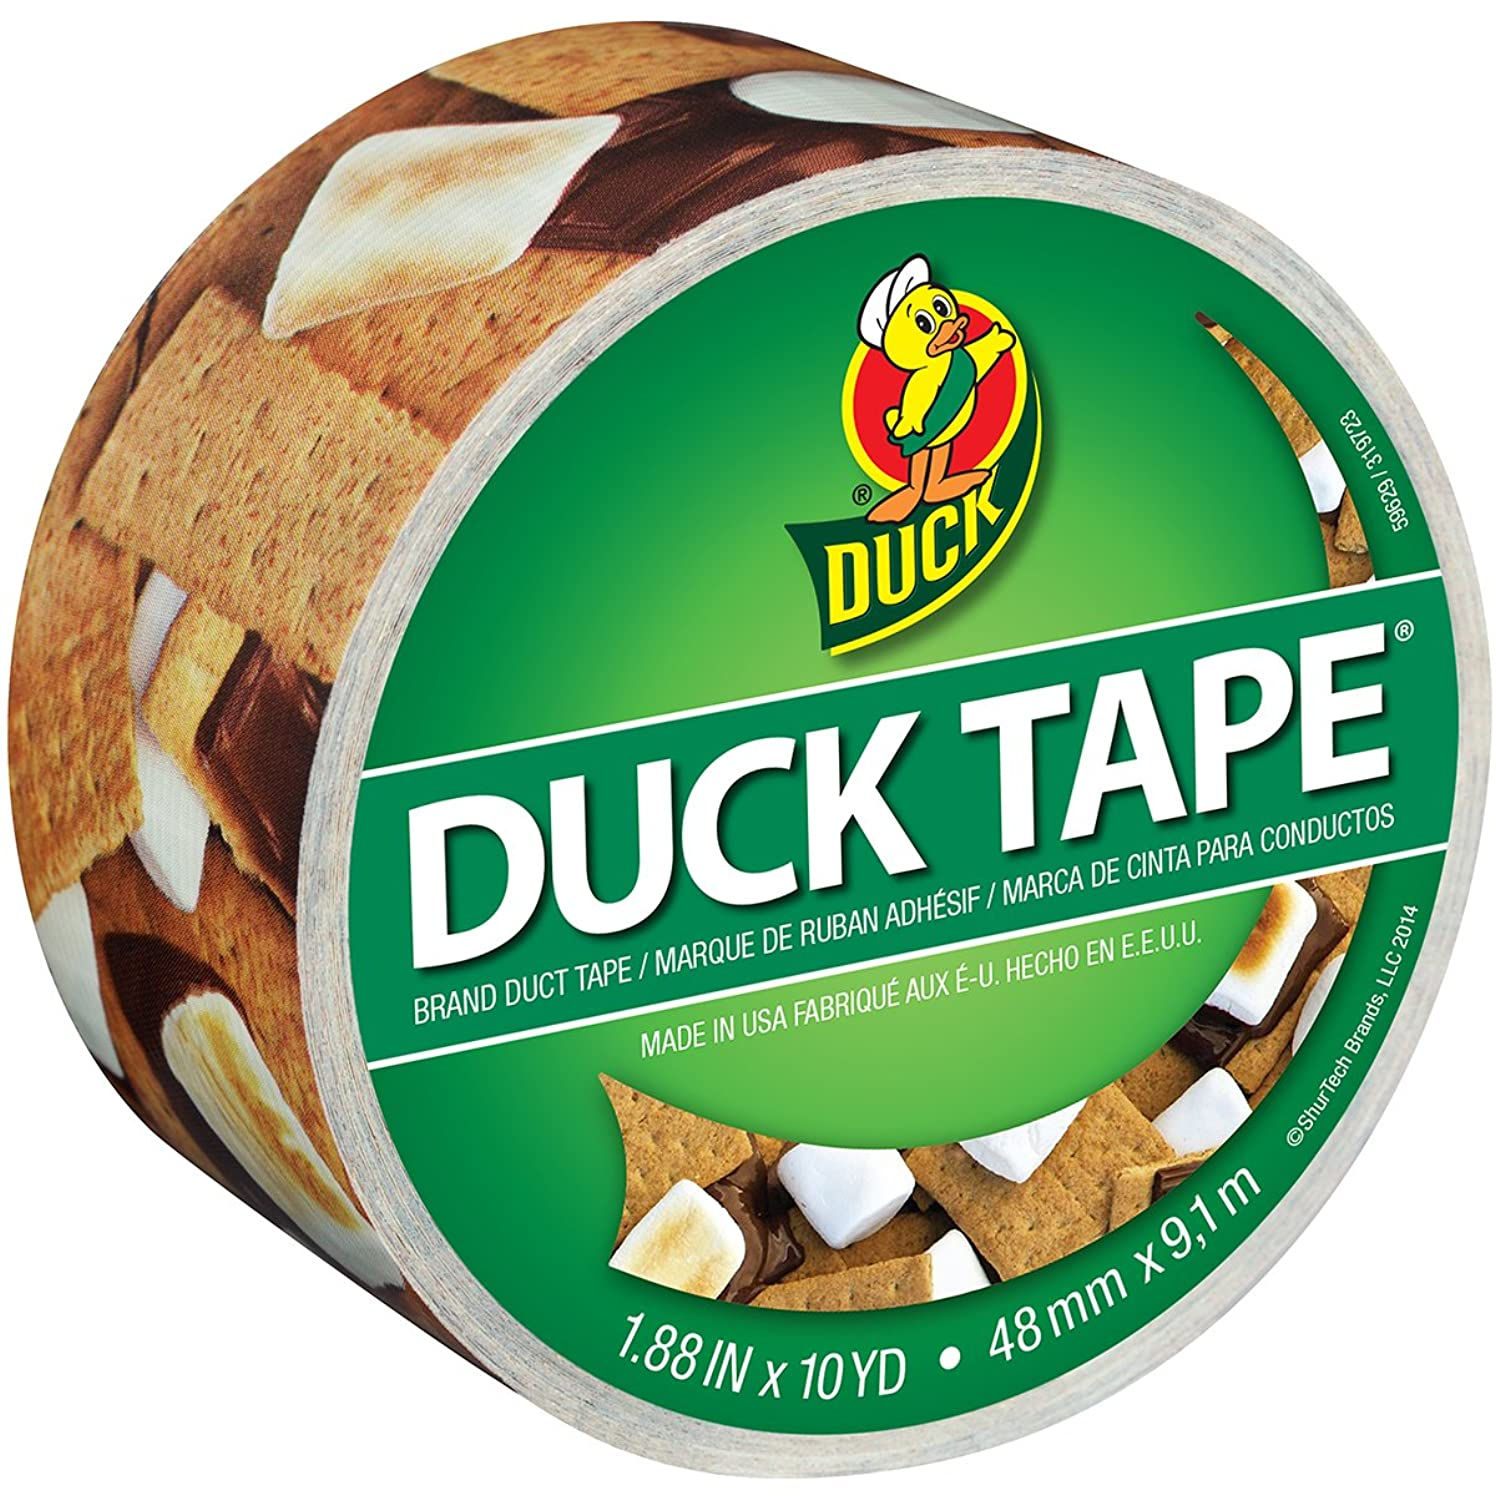 Duck Brand 283789 Printed Duct Tape, S'mores Please , 1.88 Inches x 10 Yards, Single Roll